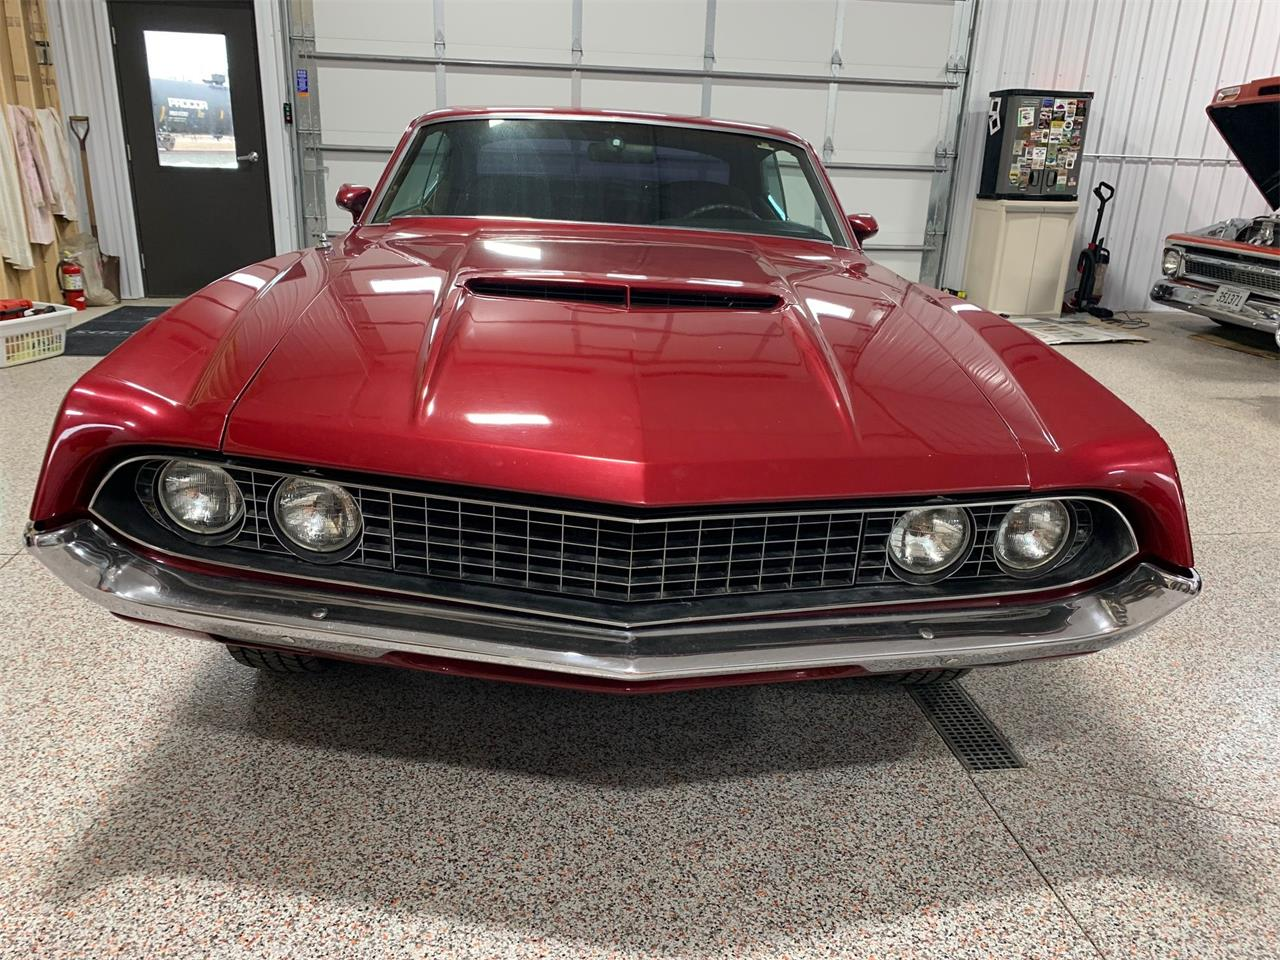 1970 Ford Torino (CC-1335628) for sale in Annandale, Minnesota